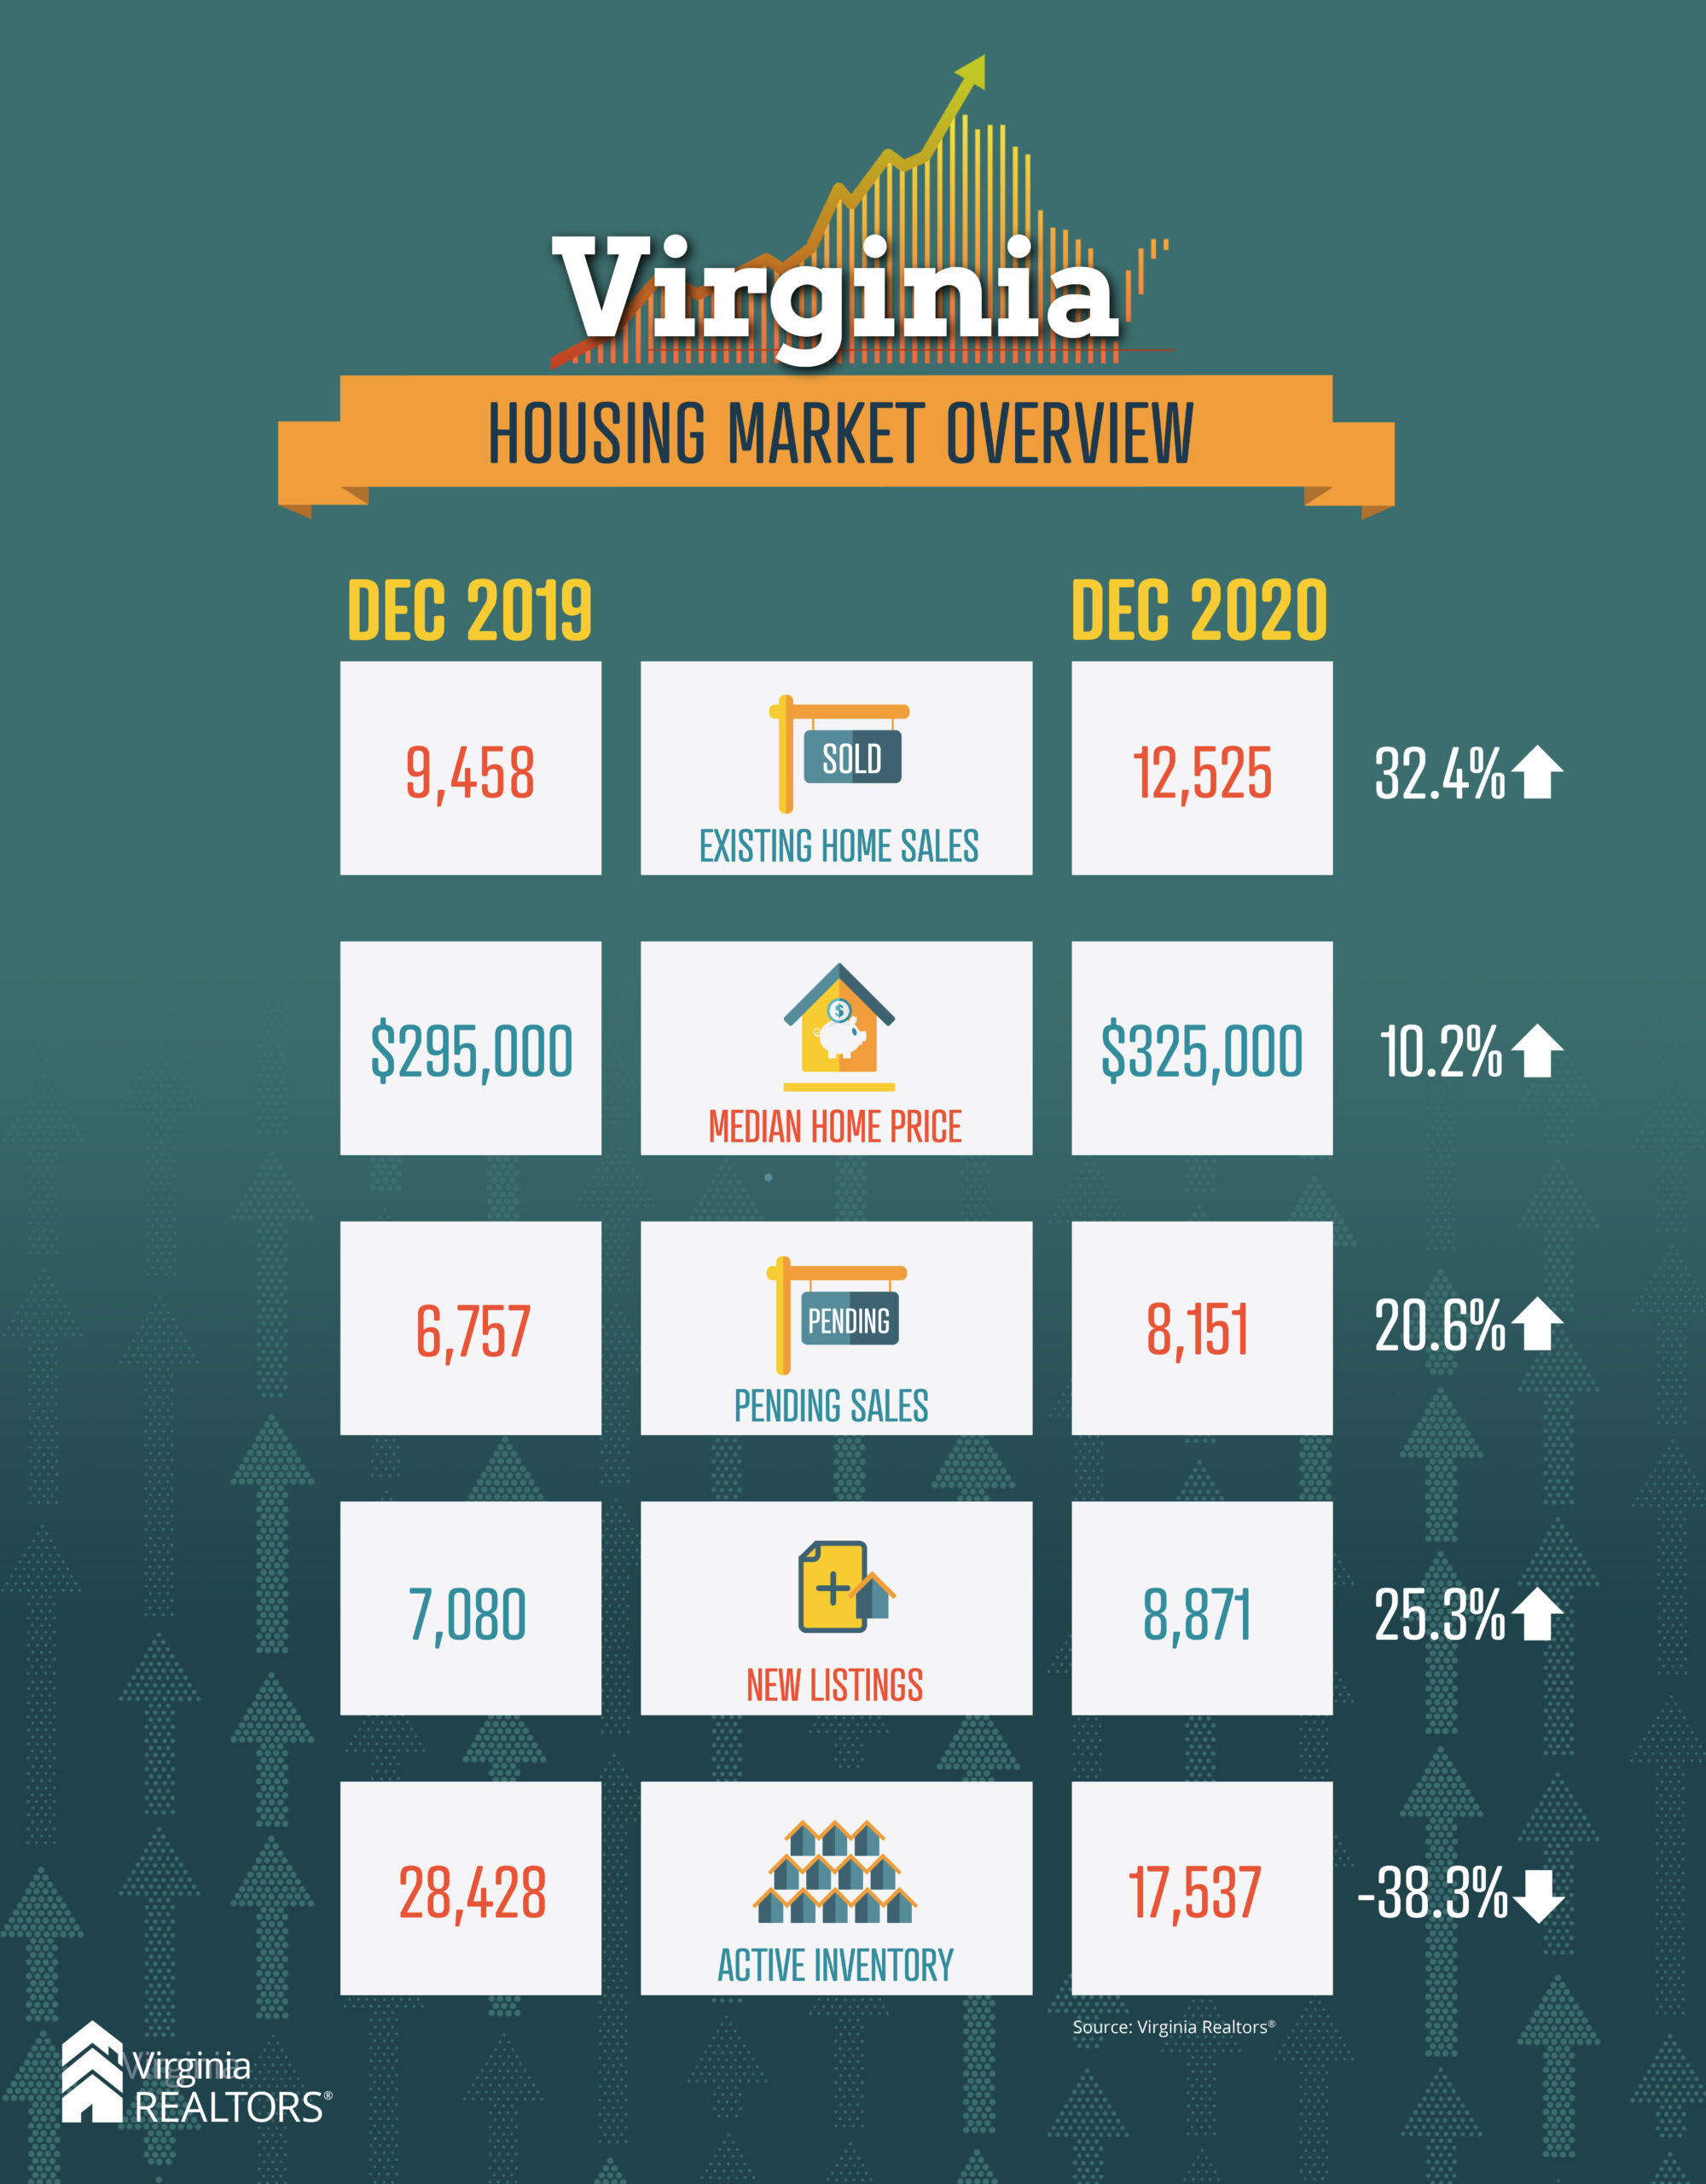 December Housing Market Overview 2019 to 2020